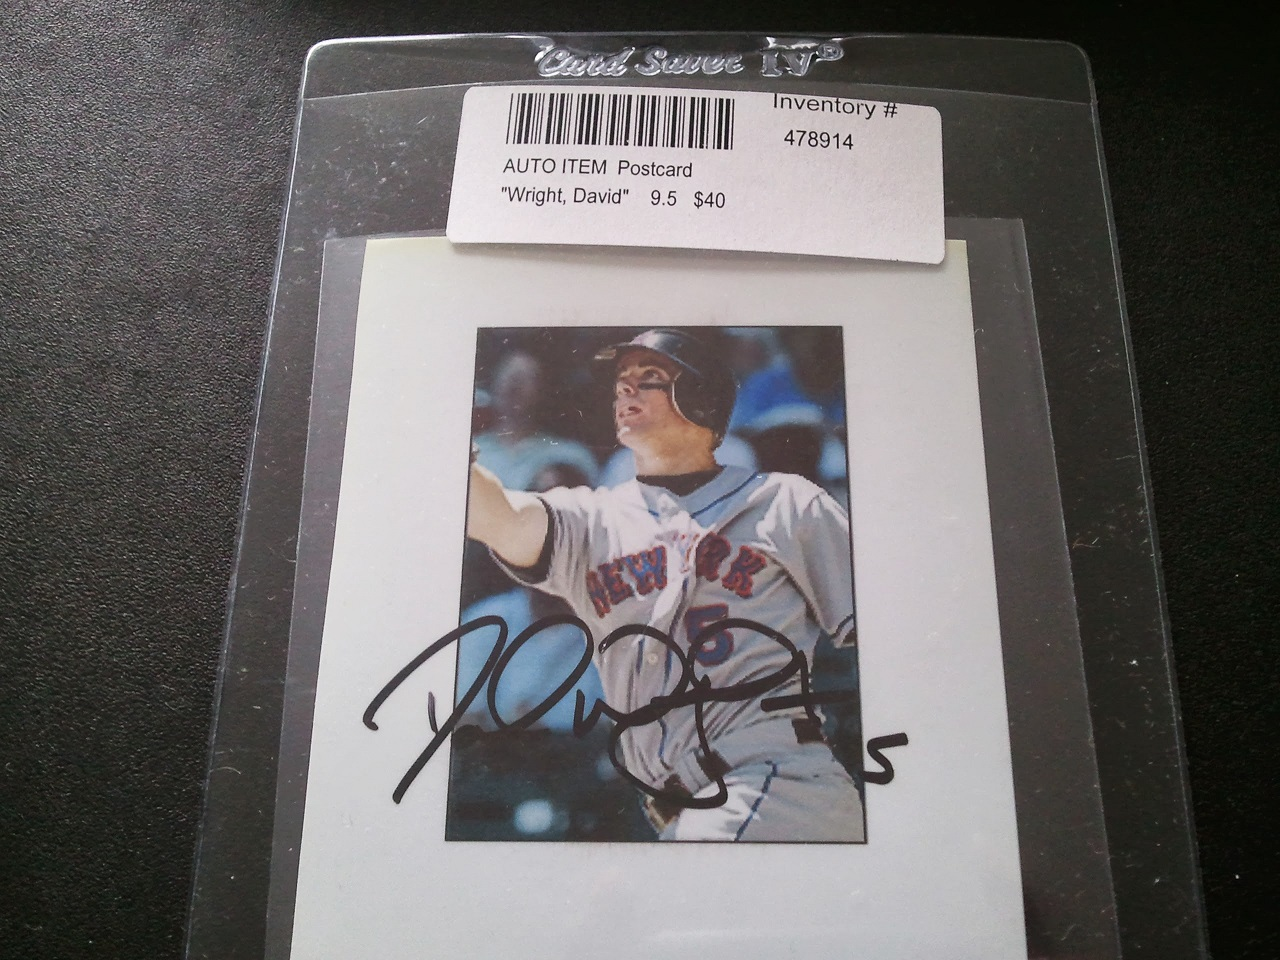 Wrapper redemption shot not taken for David wright signature